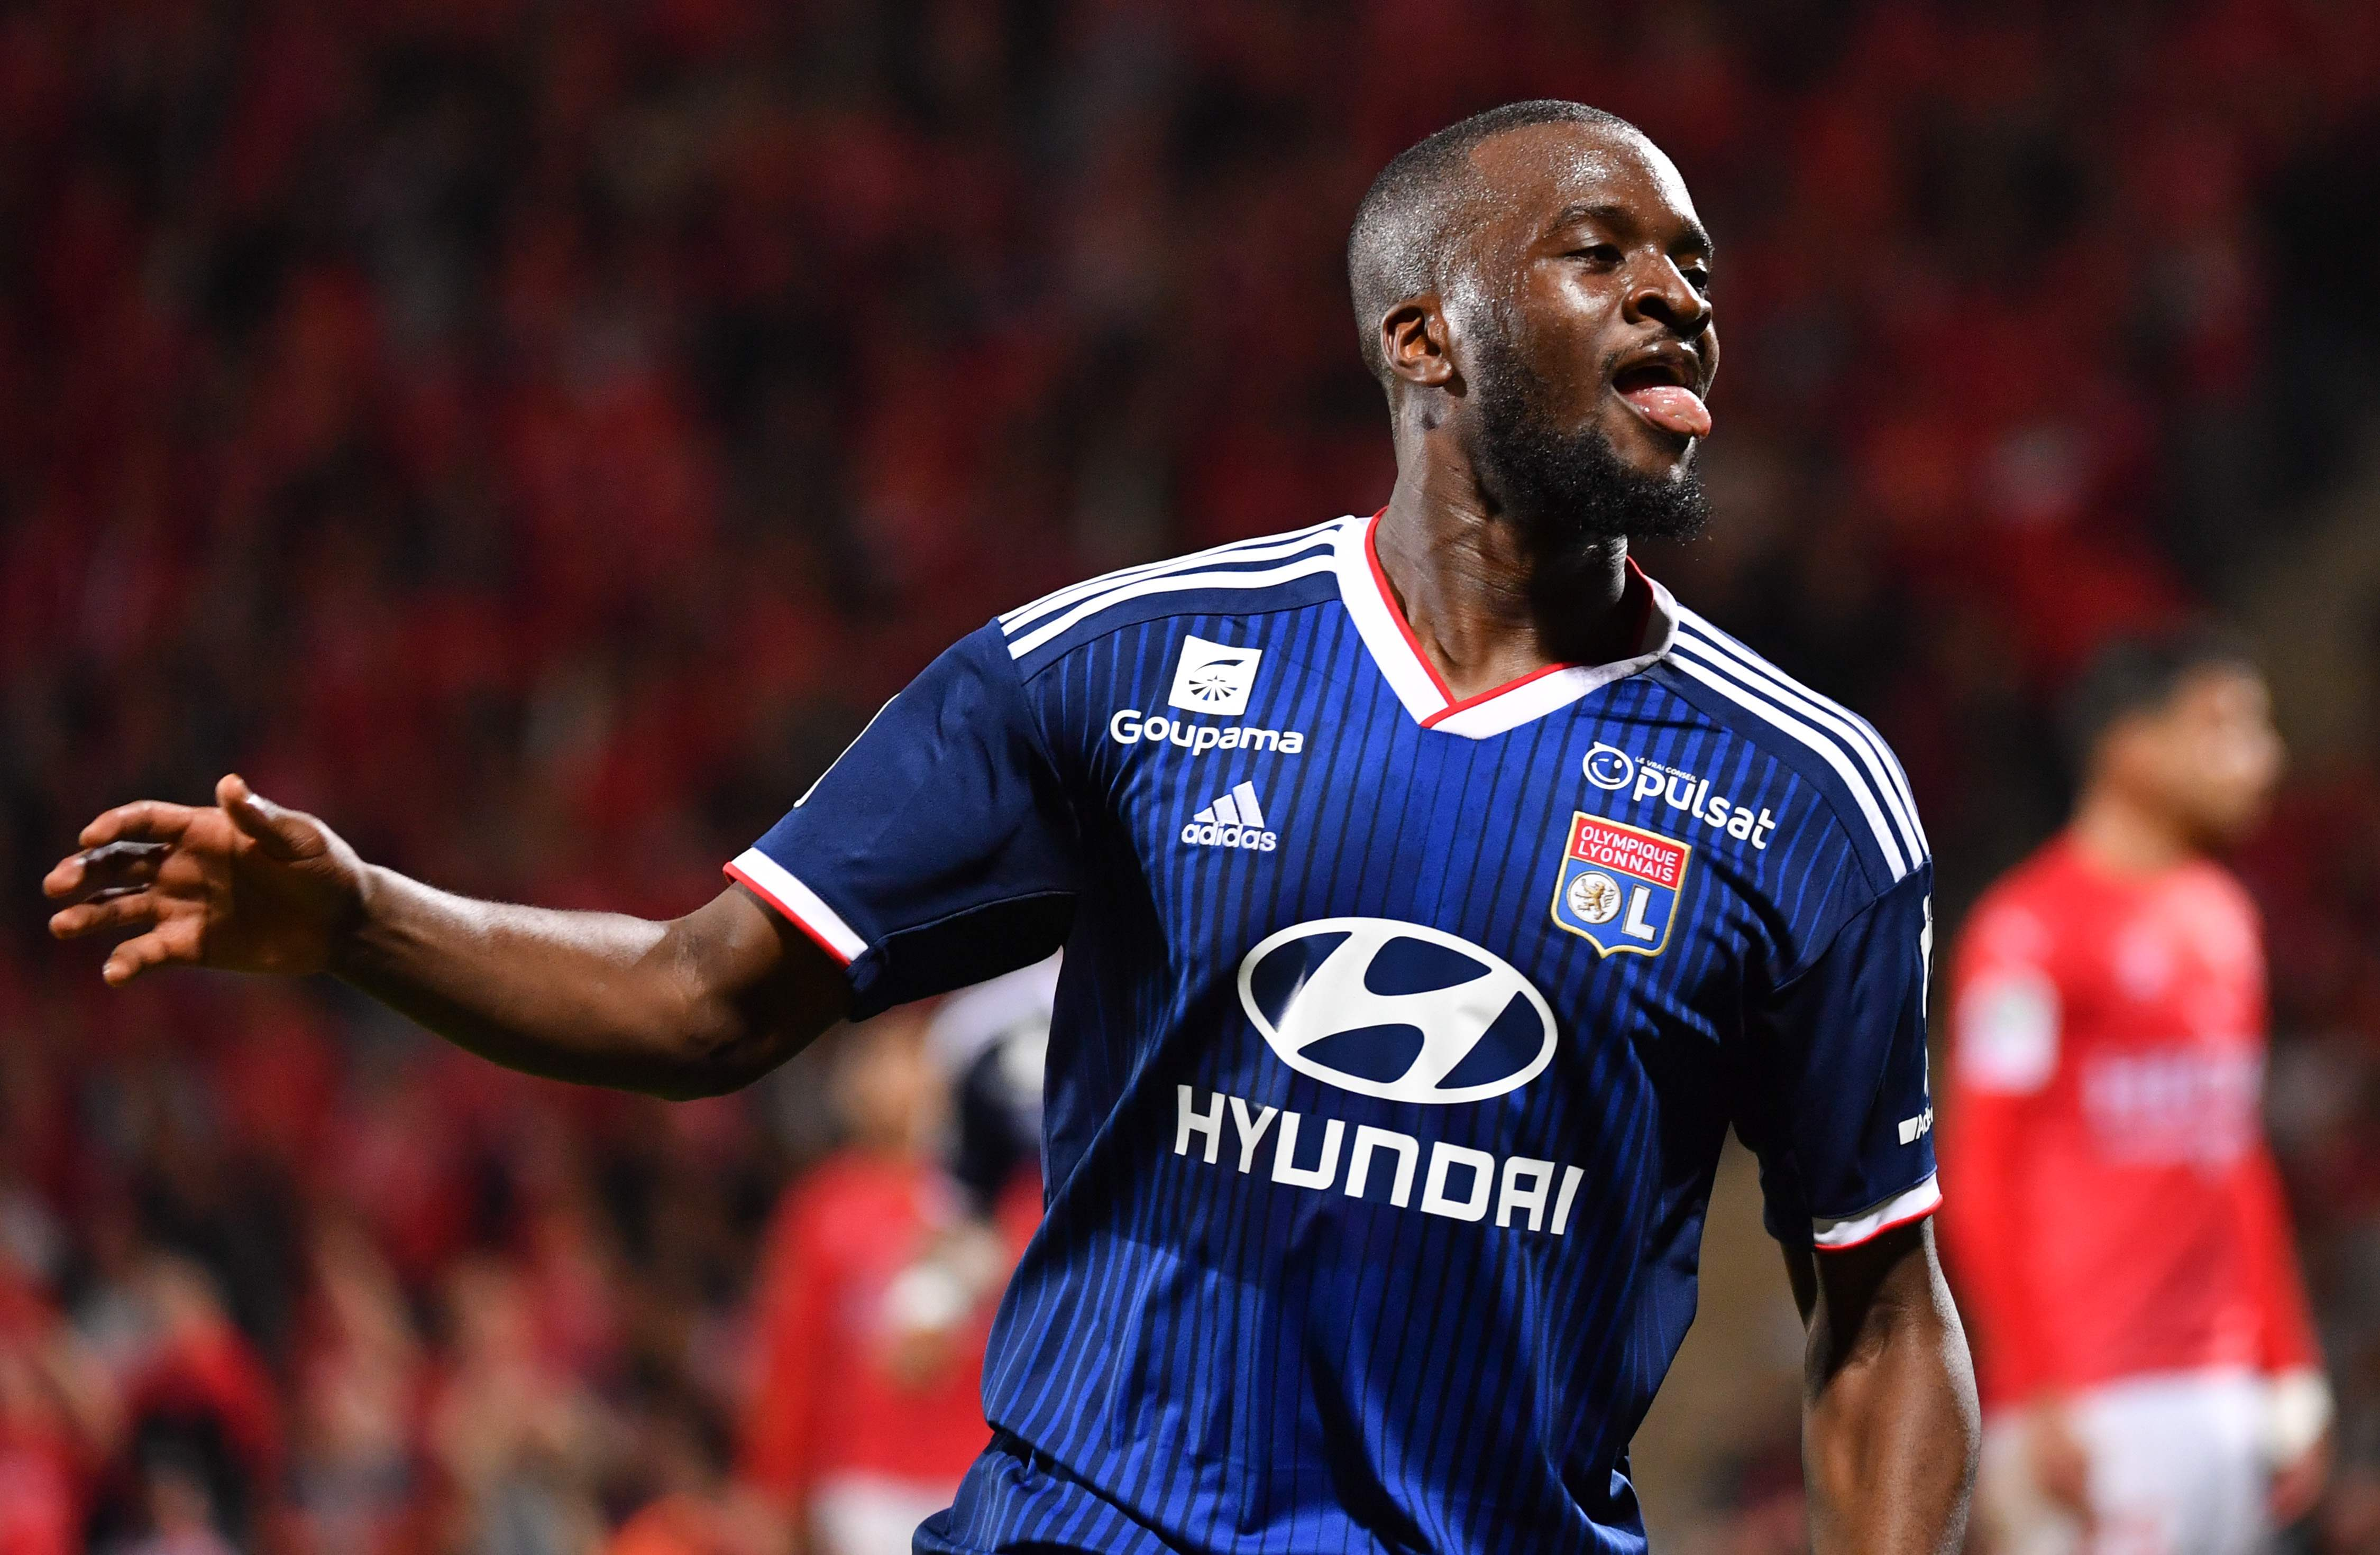 Tanguy Ndombele could be set for a £50million switch to Tottenham this summer